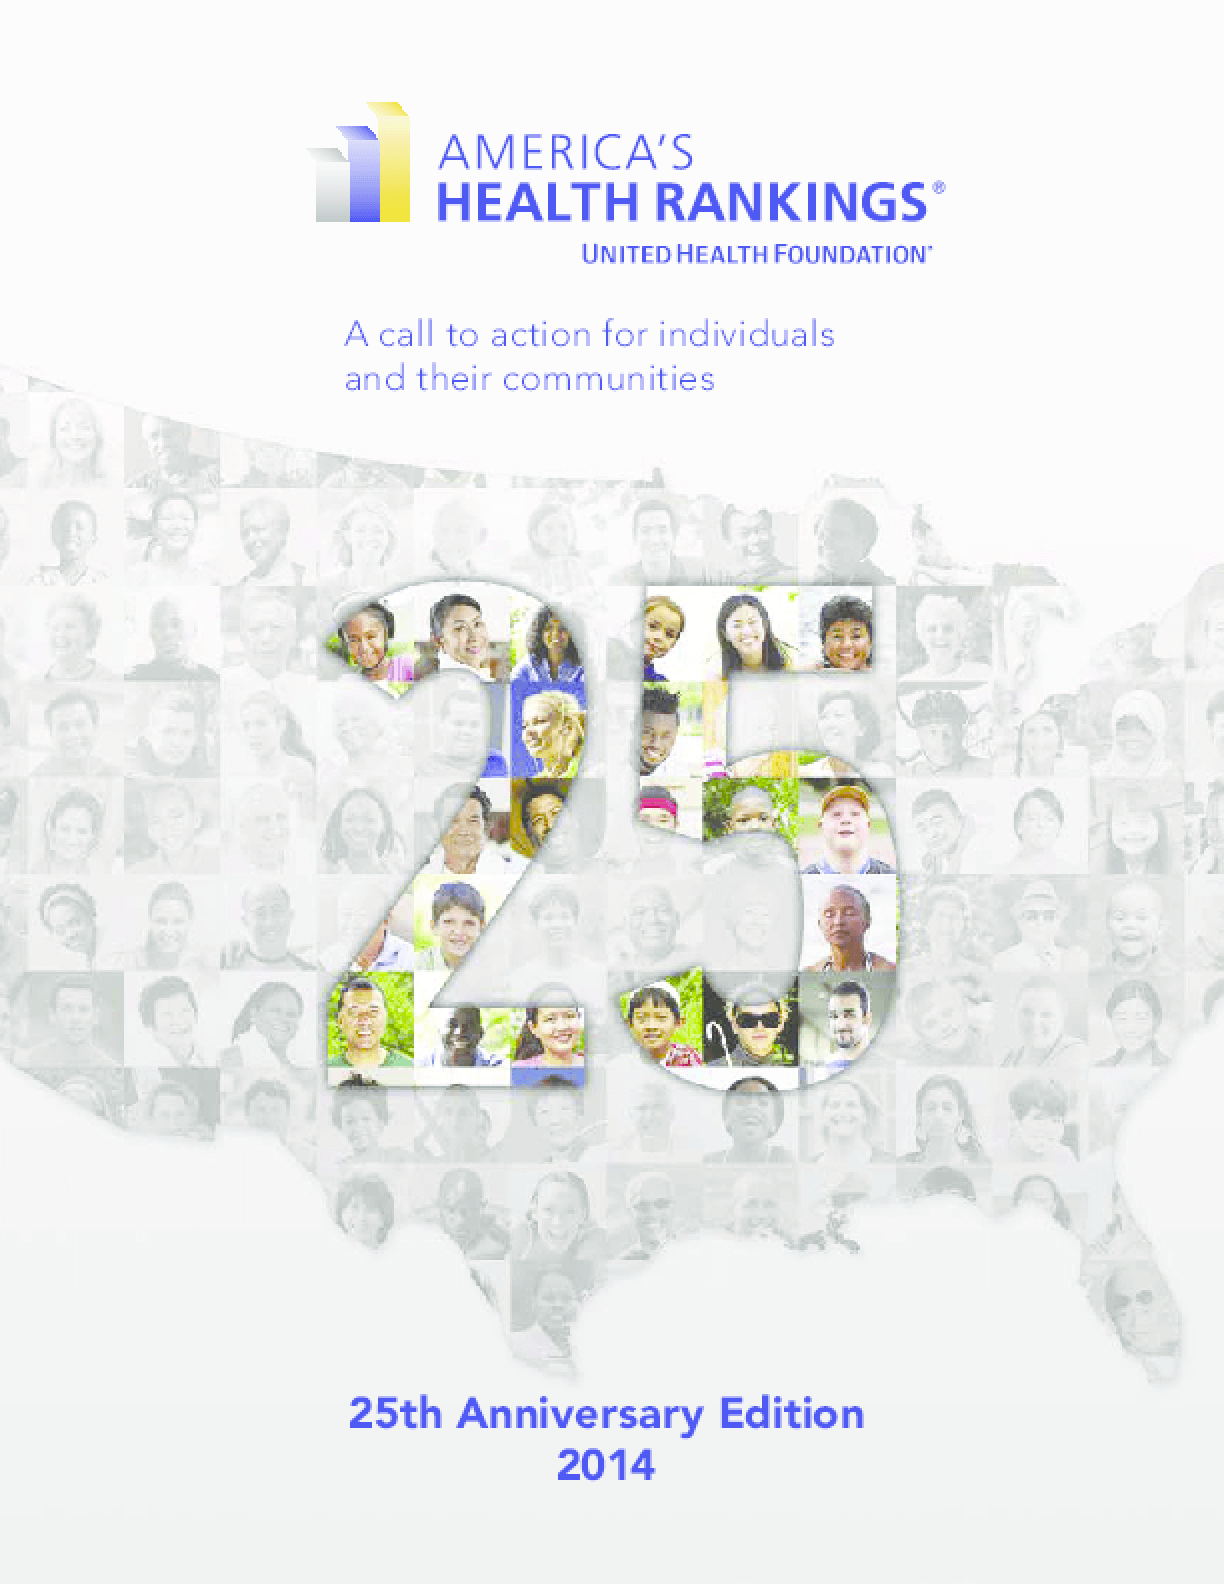 America's Health Rankings: A Call to Action for Individuals and Their Communities - 25th Anniversary Edition 2014